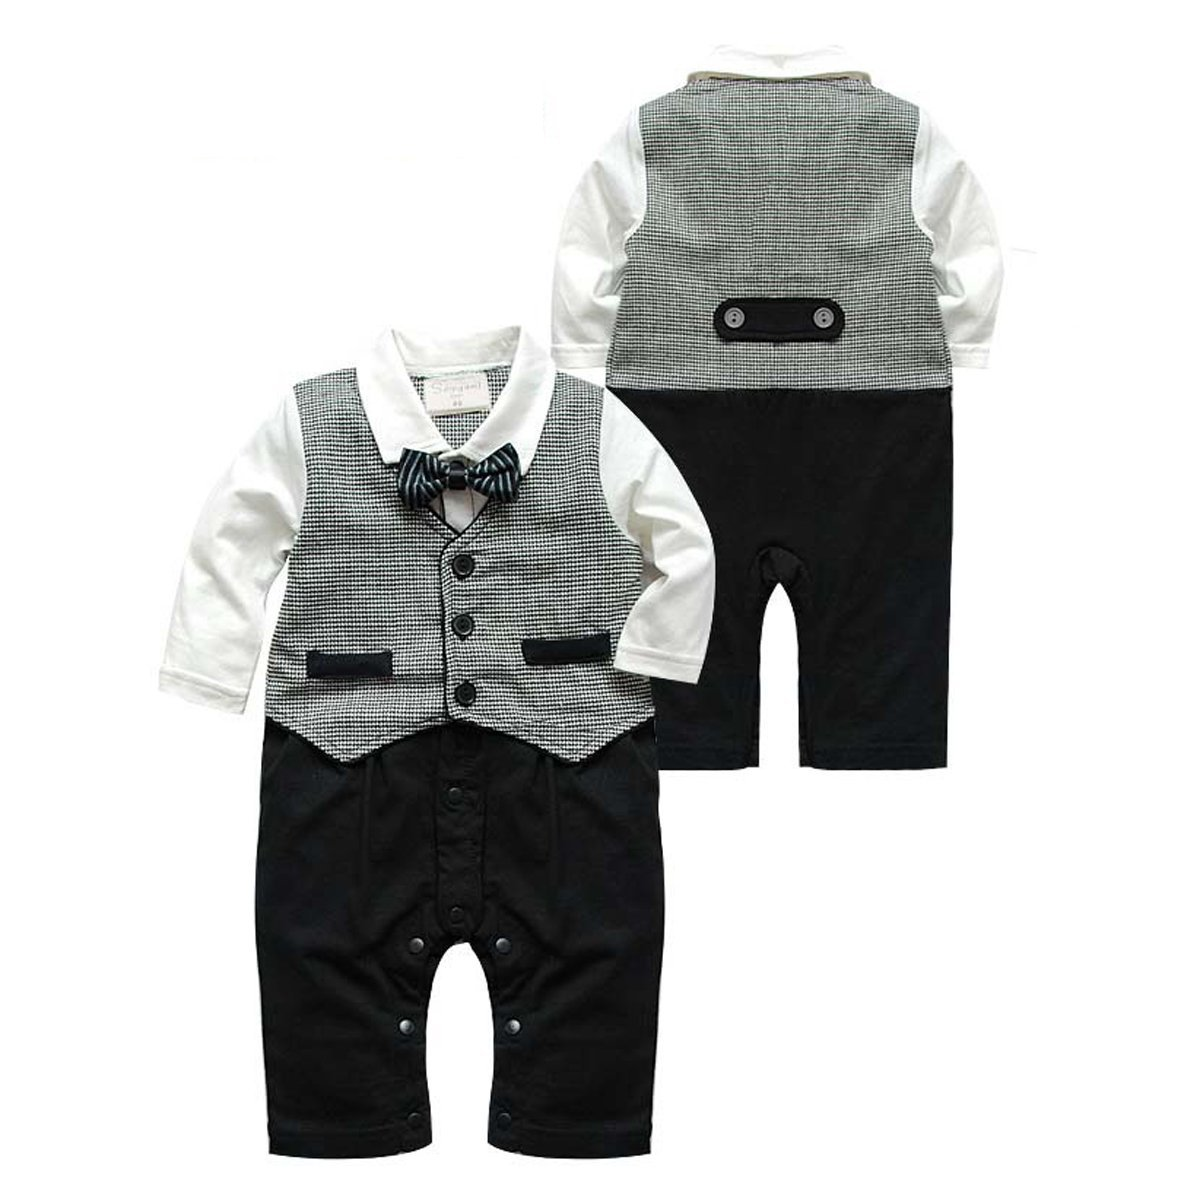 ada1c607f32 Amazon.com  maifeng Newborn Baby Boys Infant Gentleman Suit Bow Tie Romper  Jumpsuit Outfits Clothes  Baby